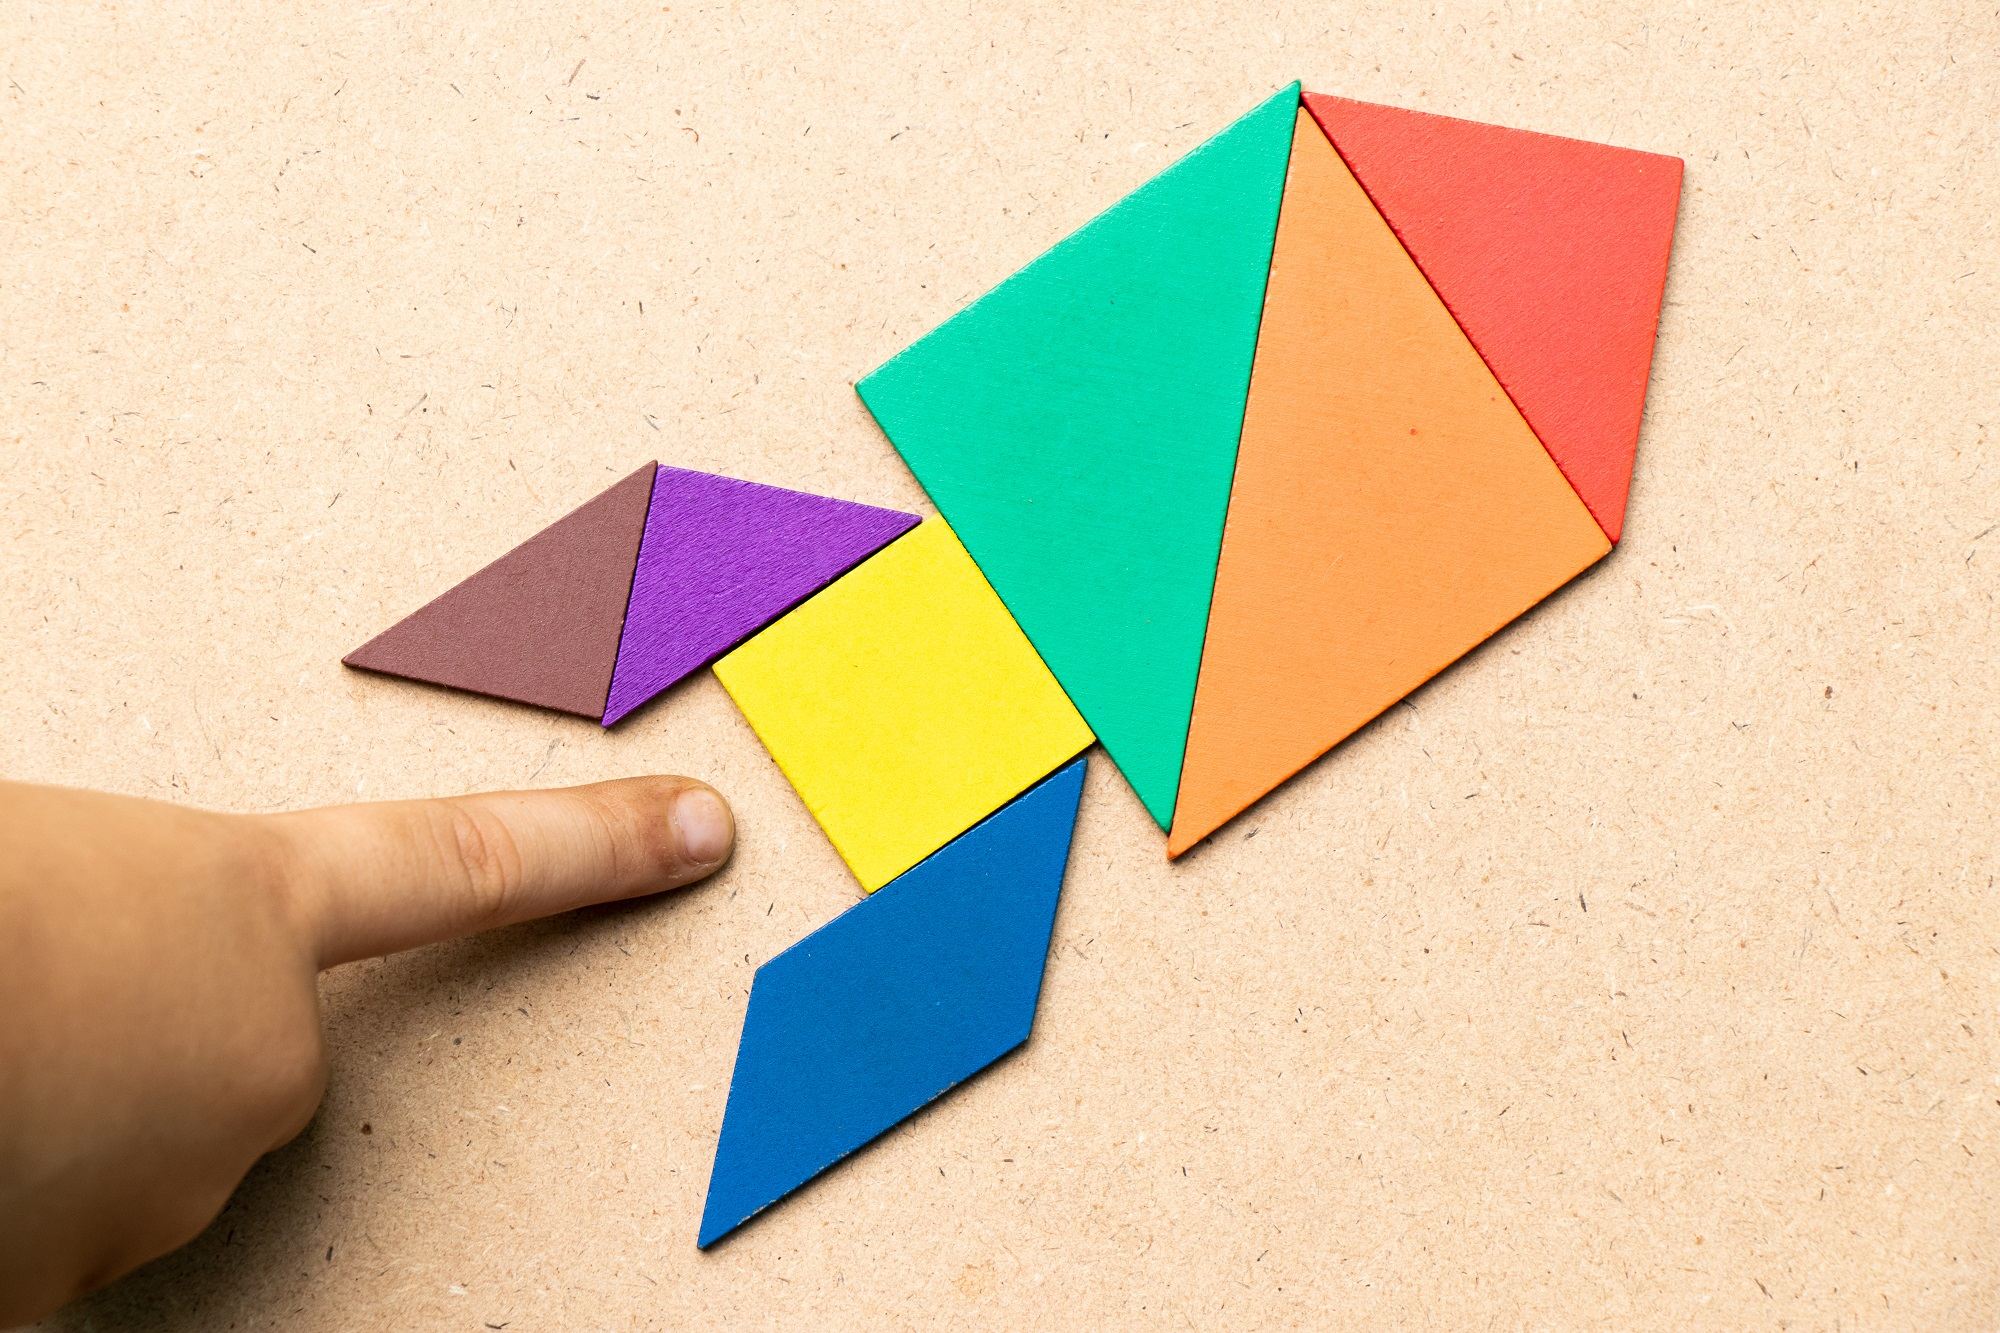 A child's hand near a colourful paper puzzle in the shape of a rocket